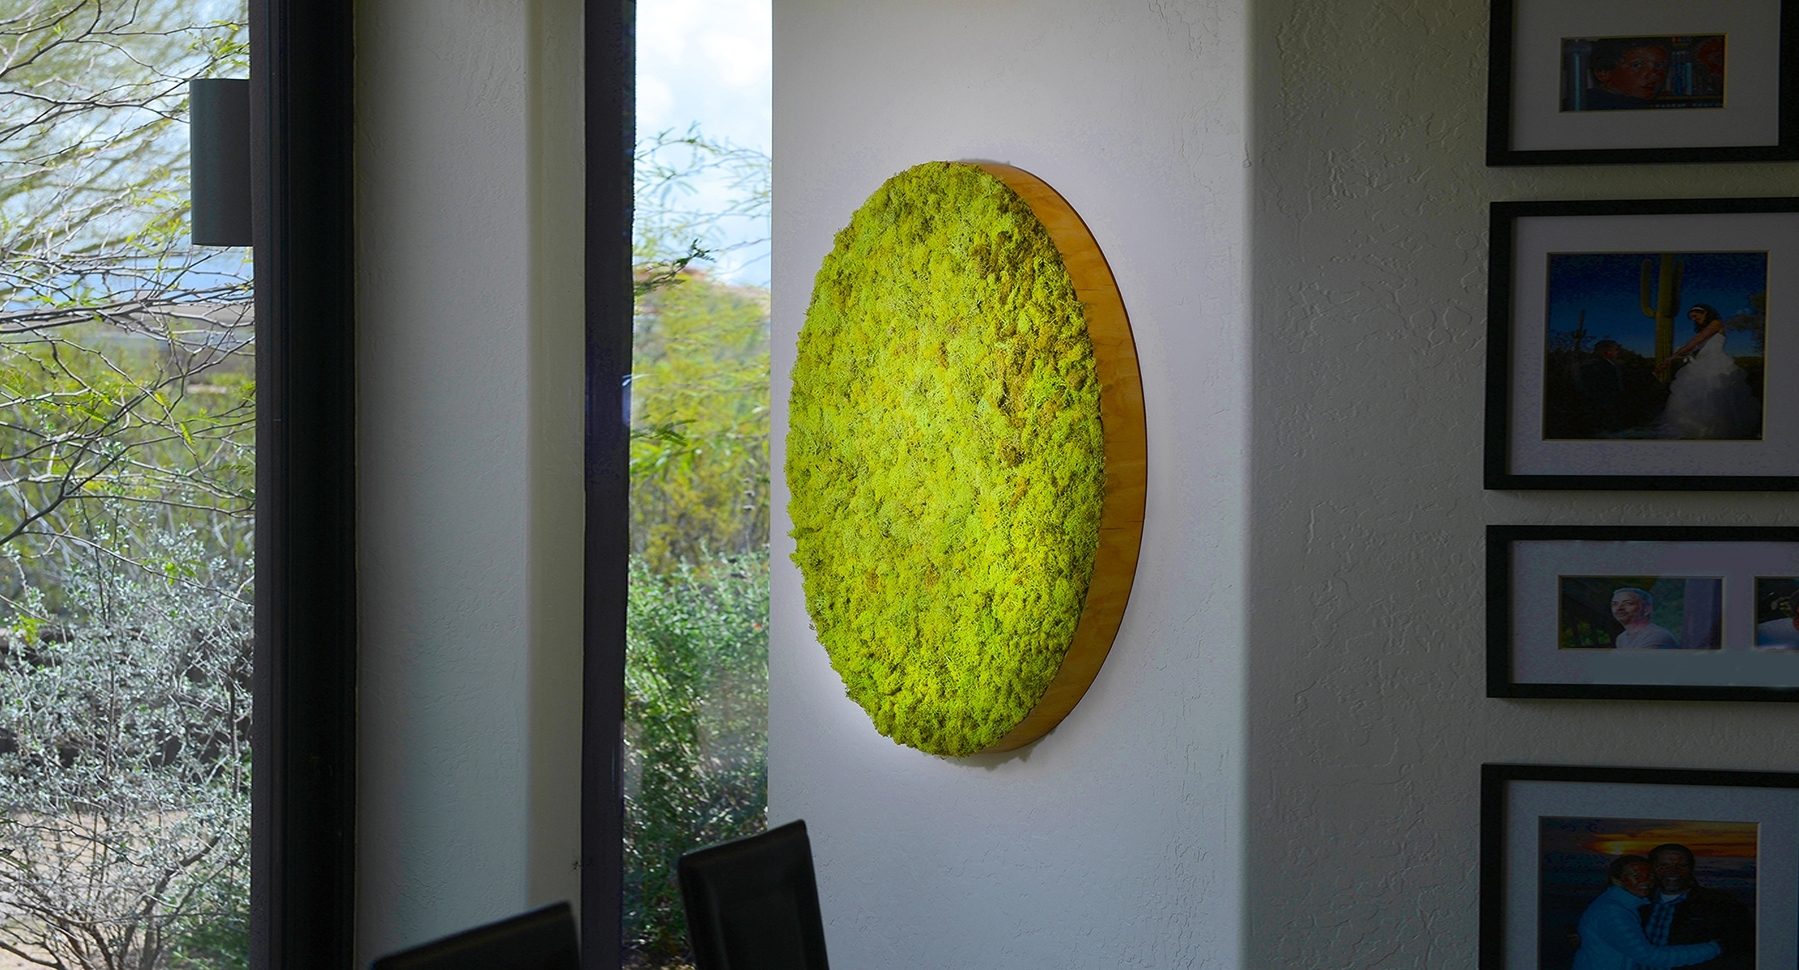 Mosswallart Pieces For Sale Online – Best Living Artwork For Home With Regard To Most Popular Moss Wall Art (View 7 of 20)